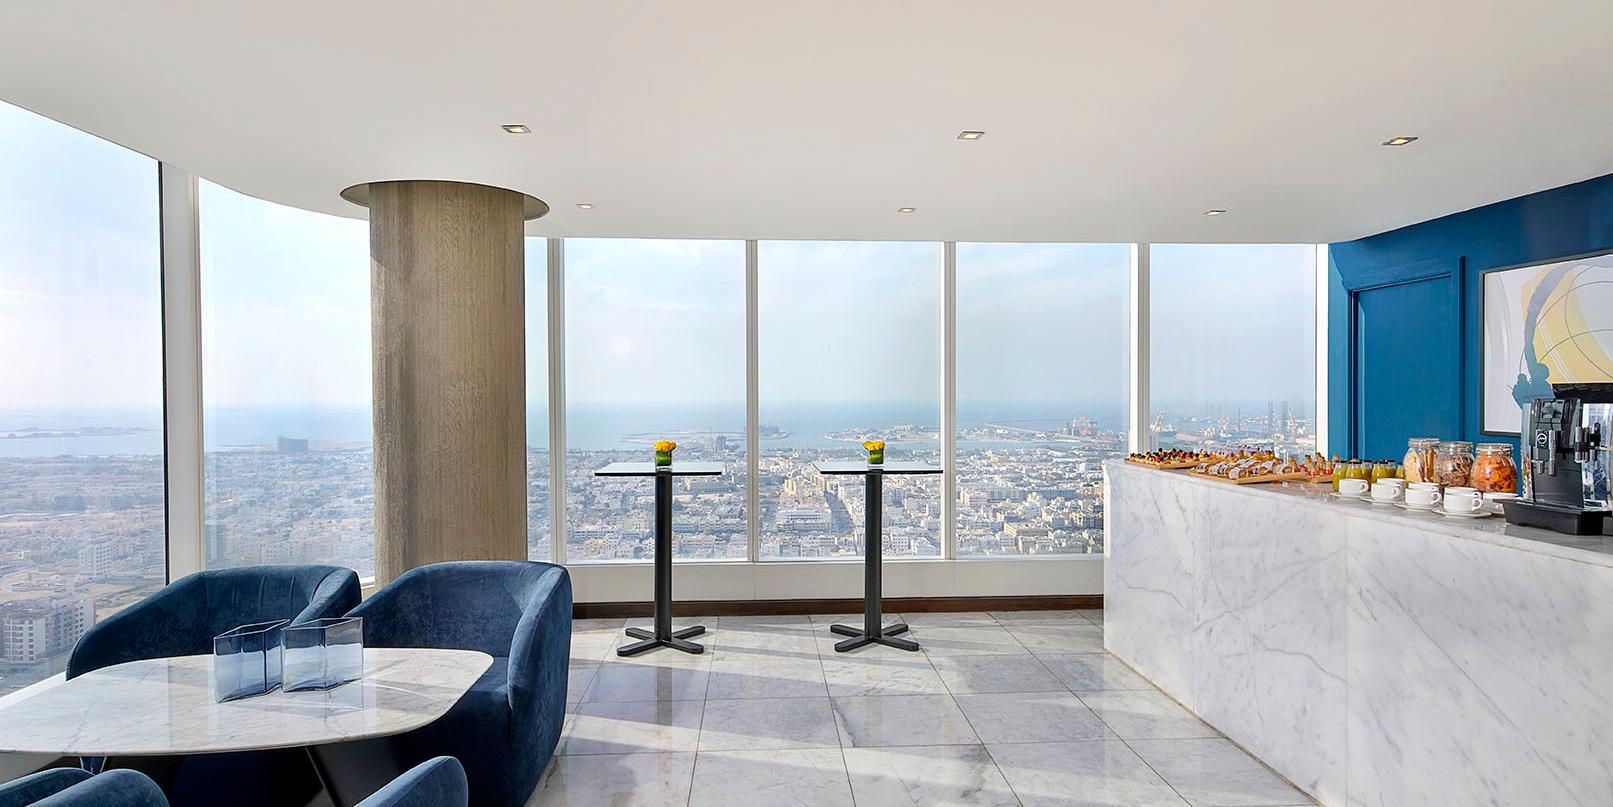 Meeting Plus break out area, with views of Jumeirah Beach